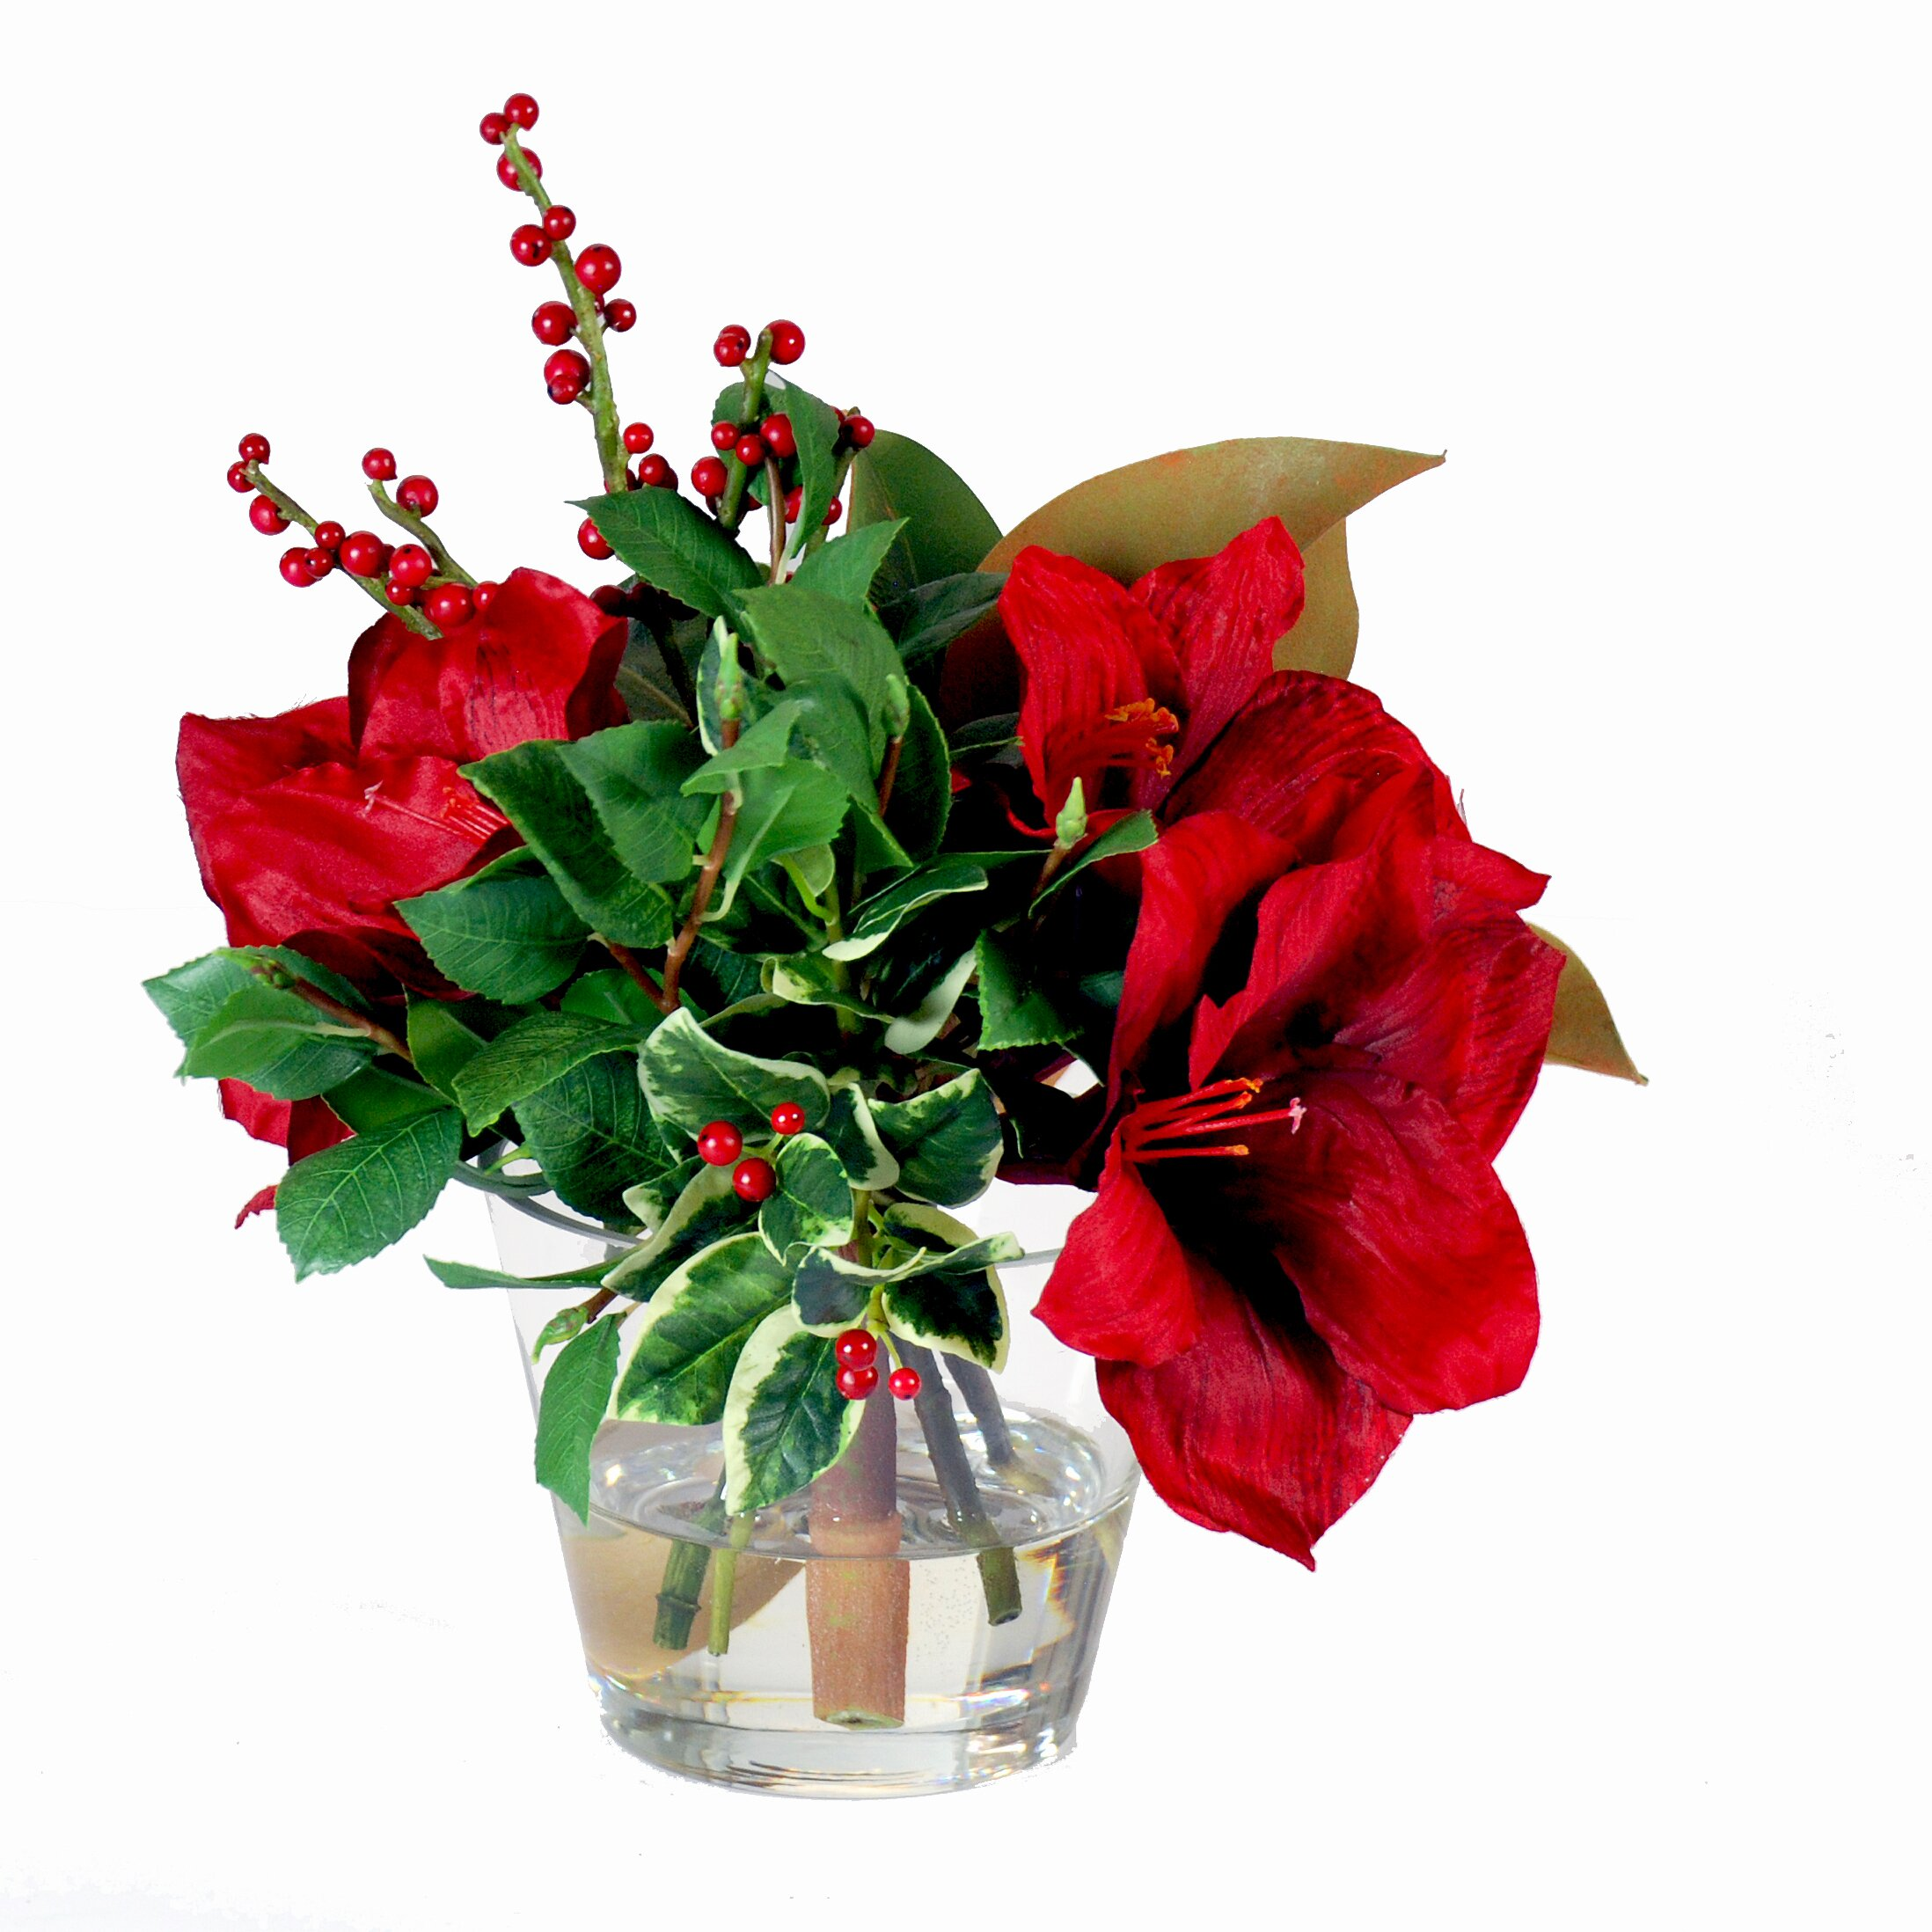 Jane seymour botanicals amaryllis holiday glass vase for Amaryllis christmas decoration